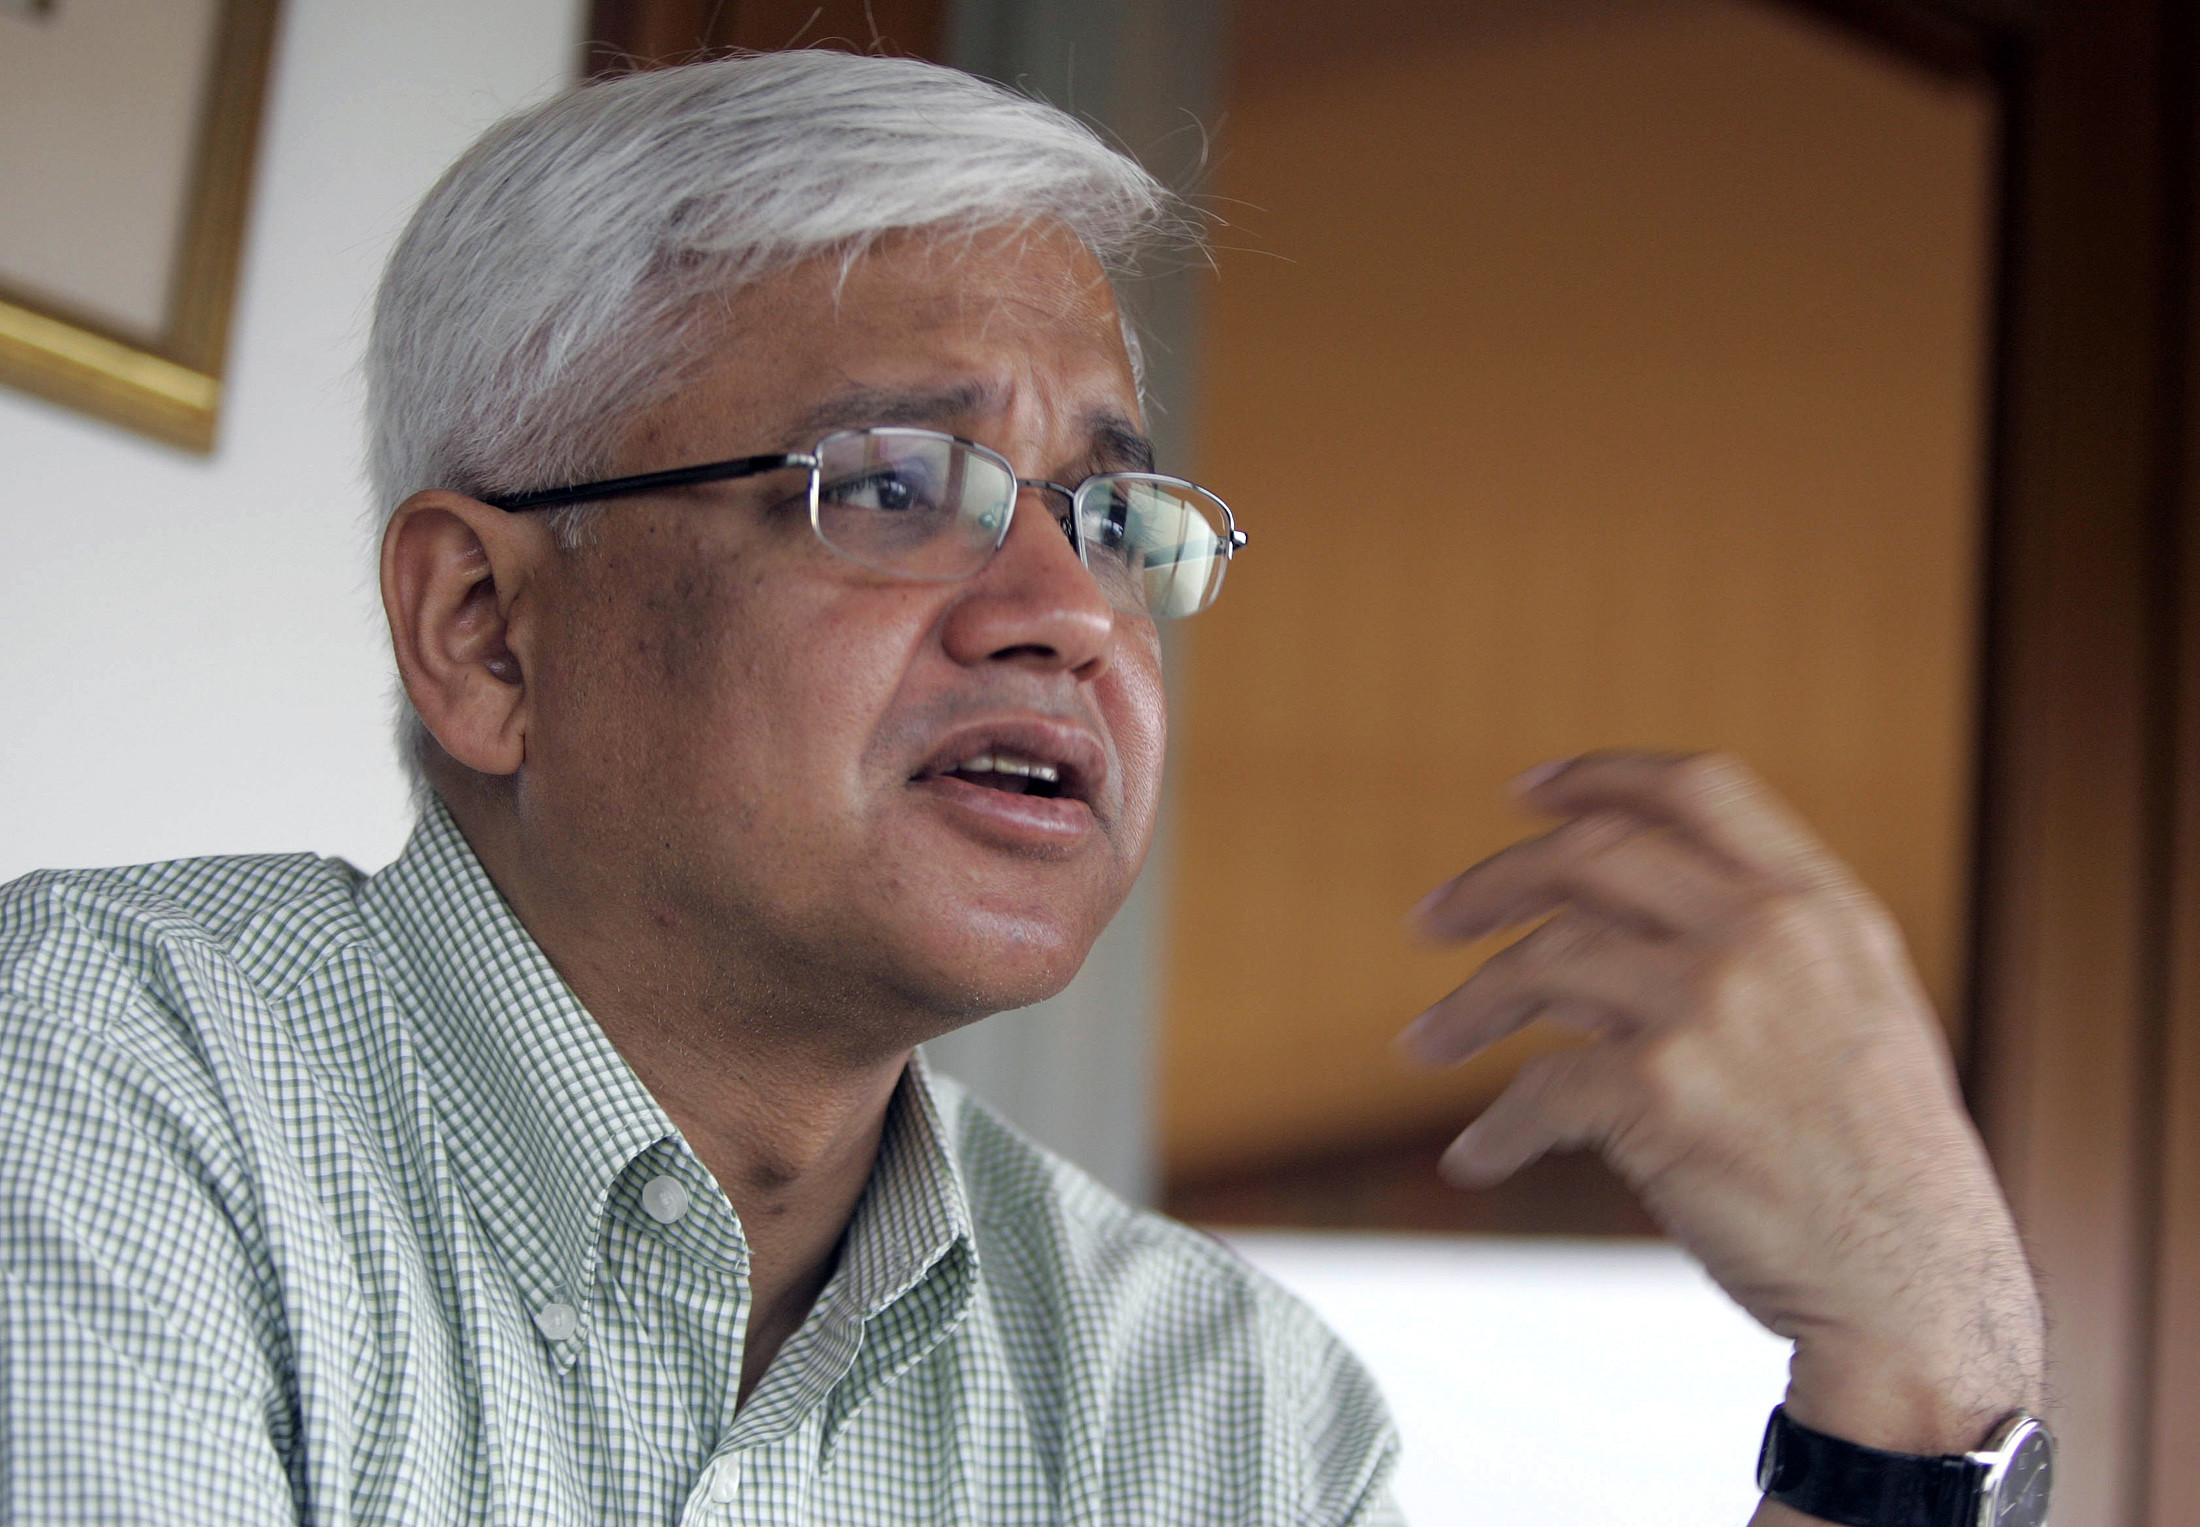 Indian author Amitav Ghosh speaks during an interview with Reuters at a hotel in New Delhi June 15, 2008. More than 20 years after writing his first novel, Ghosh is still drawing on his favourite subjects of history and anthropology to weave his stories. His latest work,